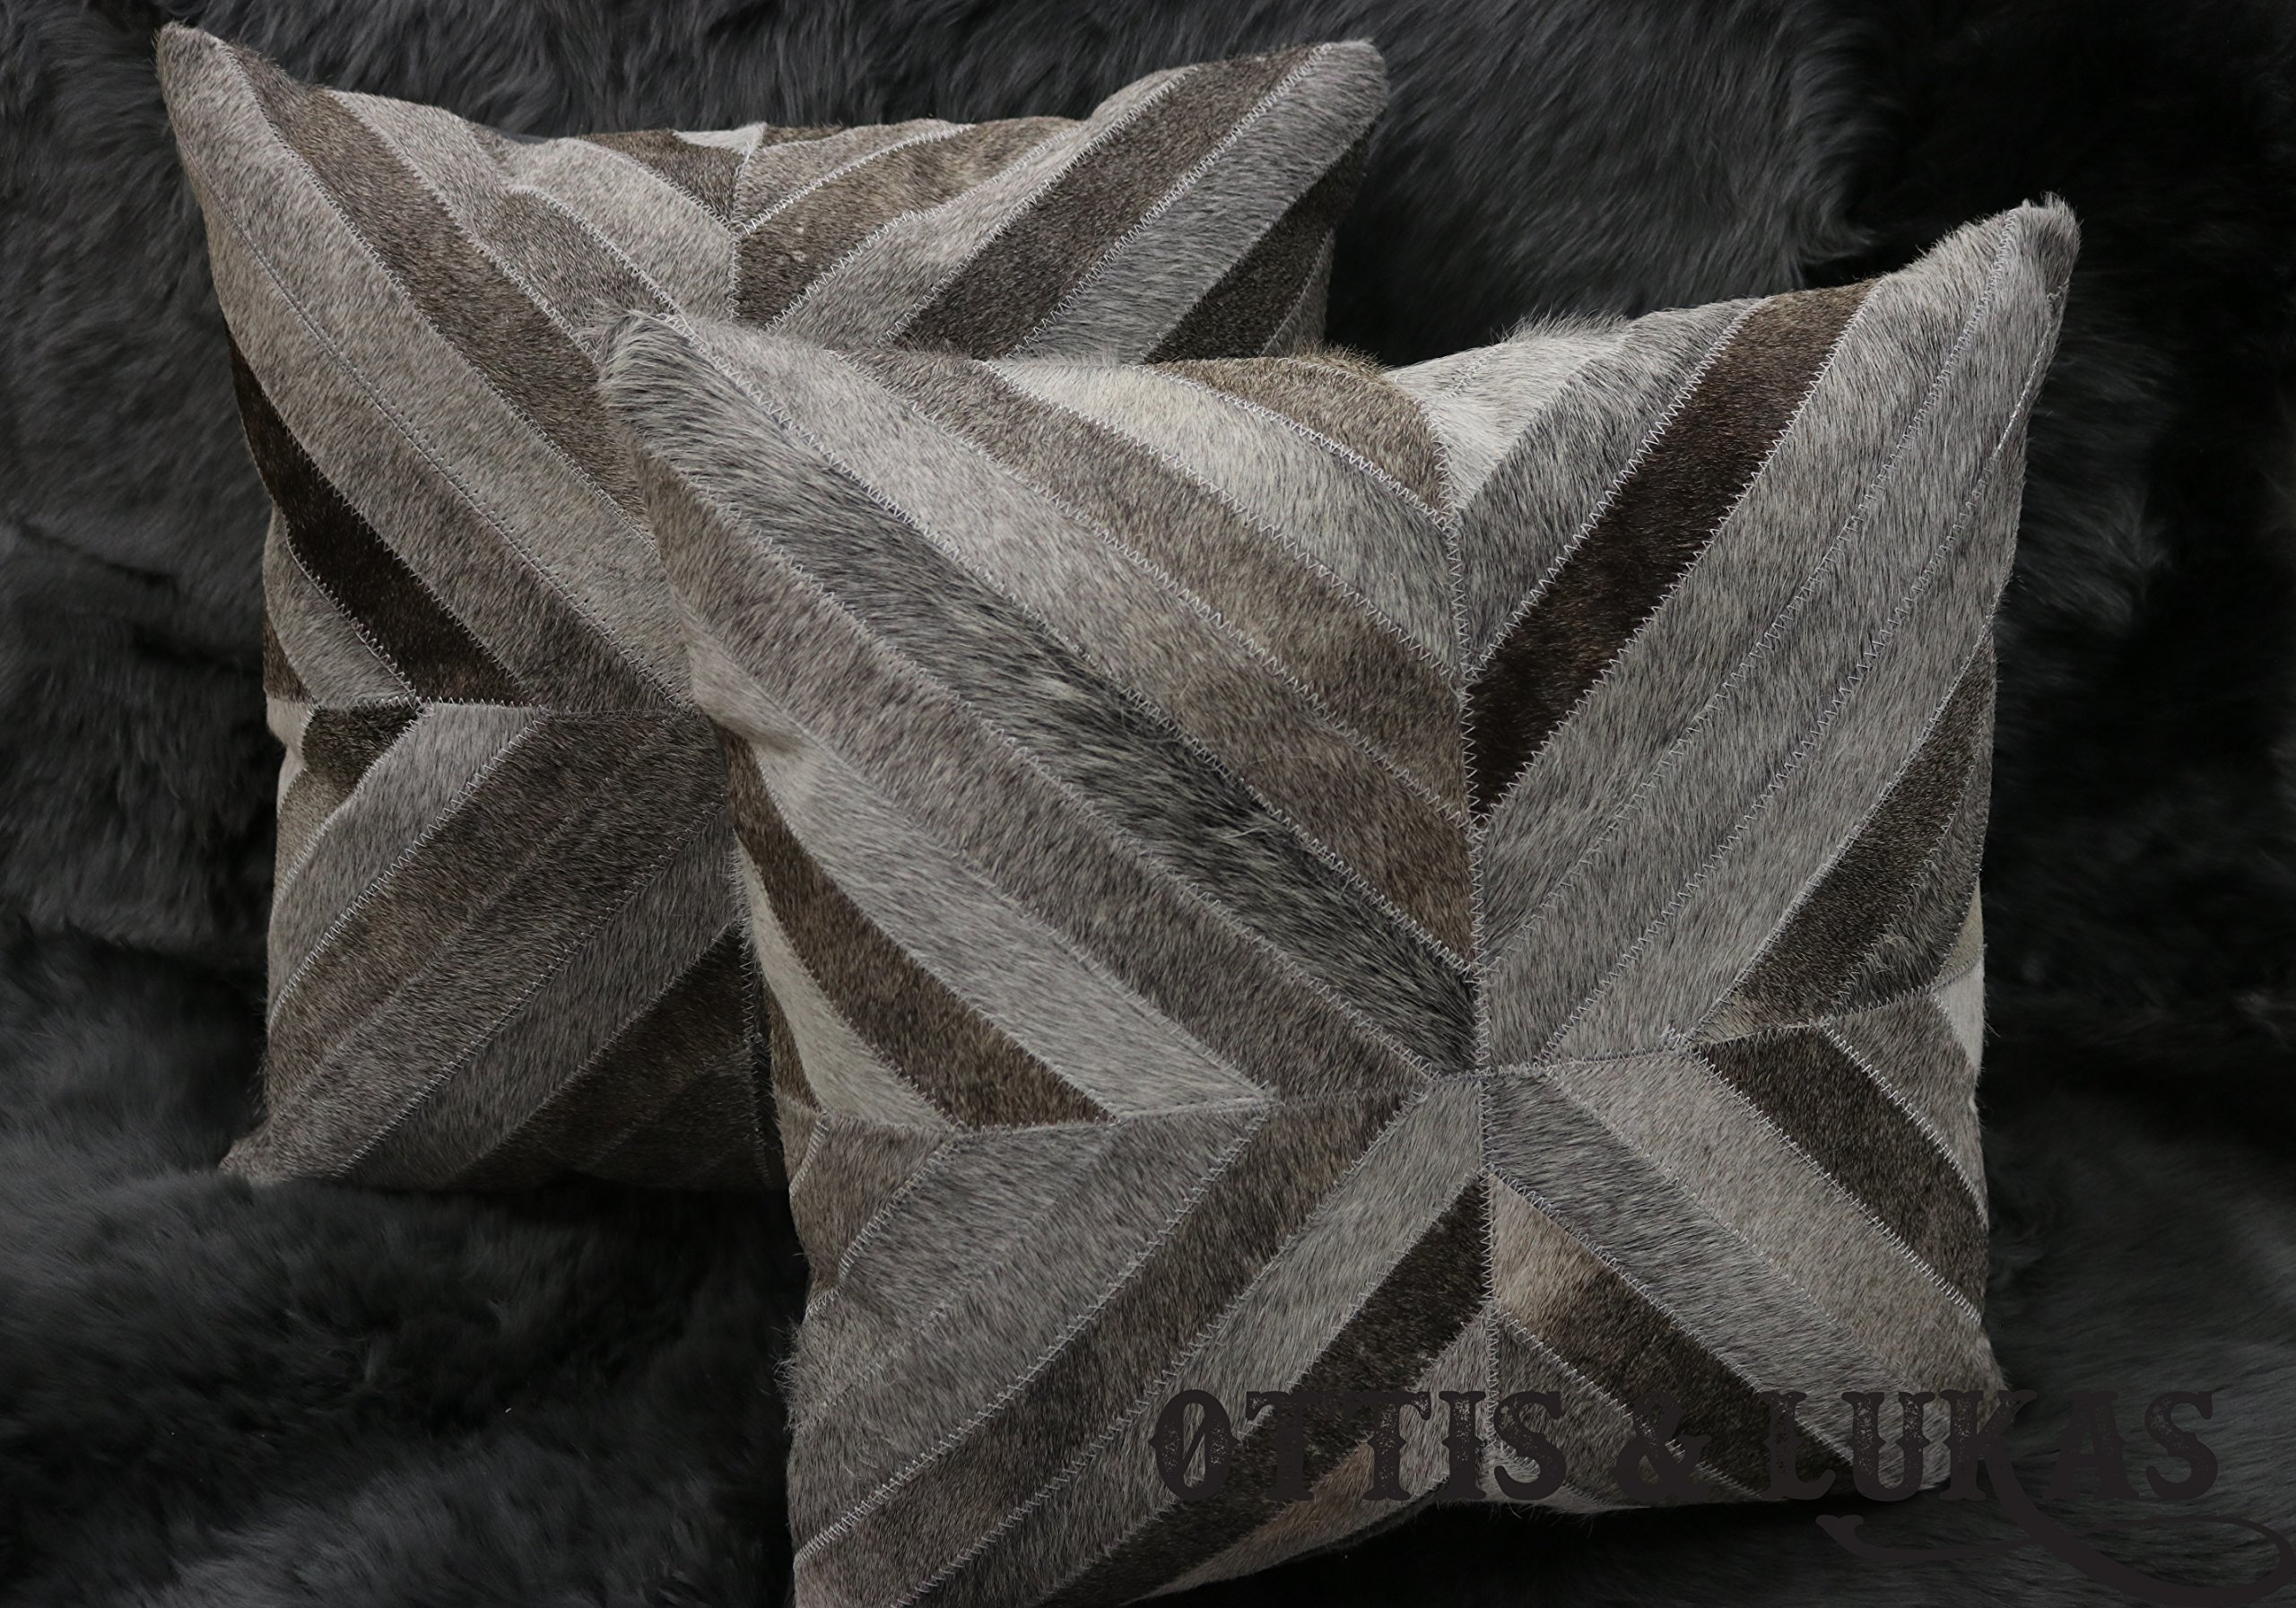 Set Patchwork Cowhide Pillows 18'' x 18'' Genuine Animal Skin - Hand pieced and patched by Skilled Artisans - Polyester Fiberfill Include